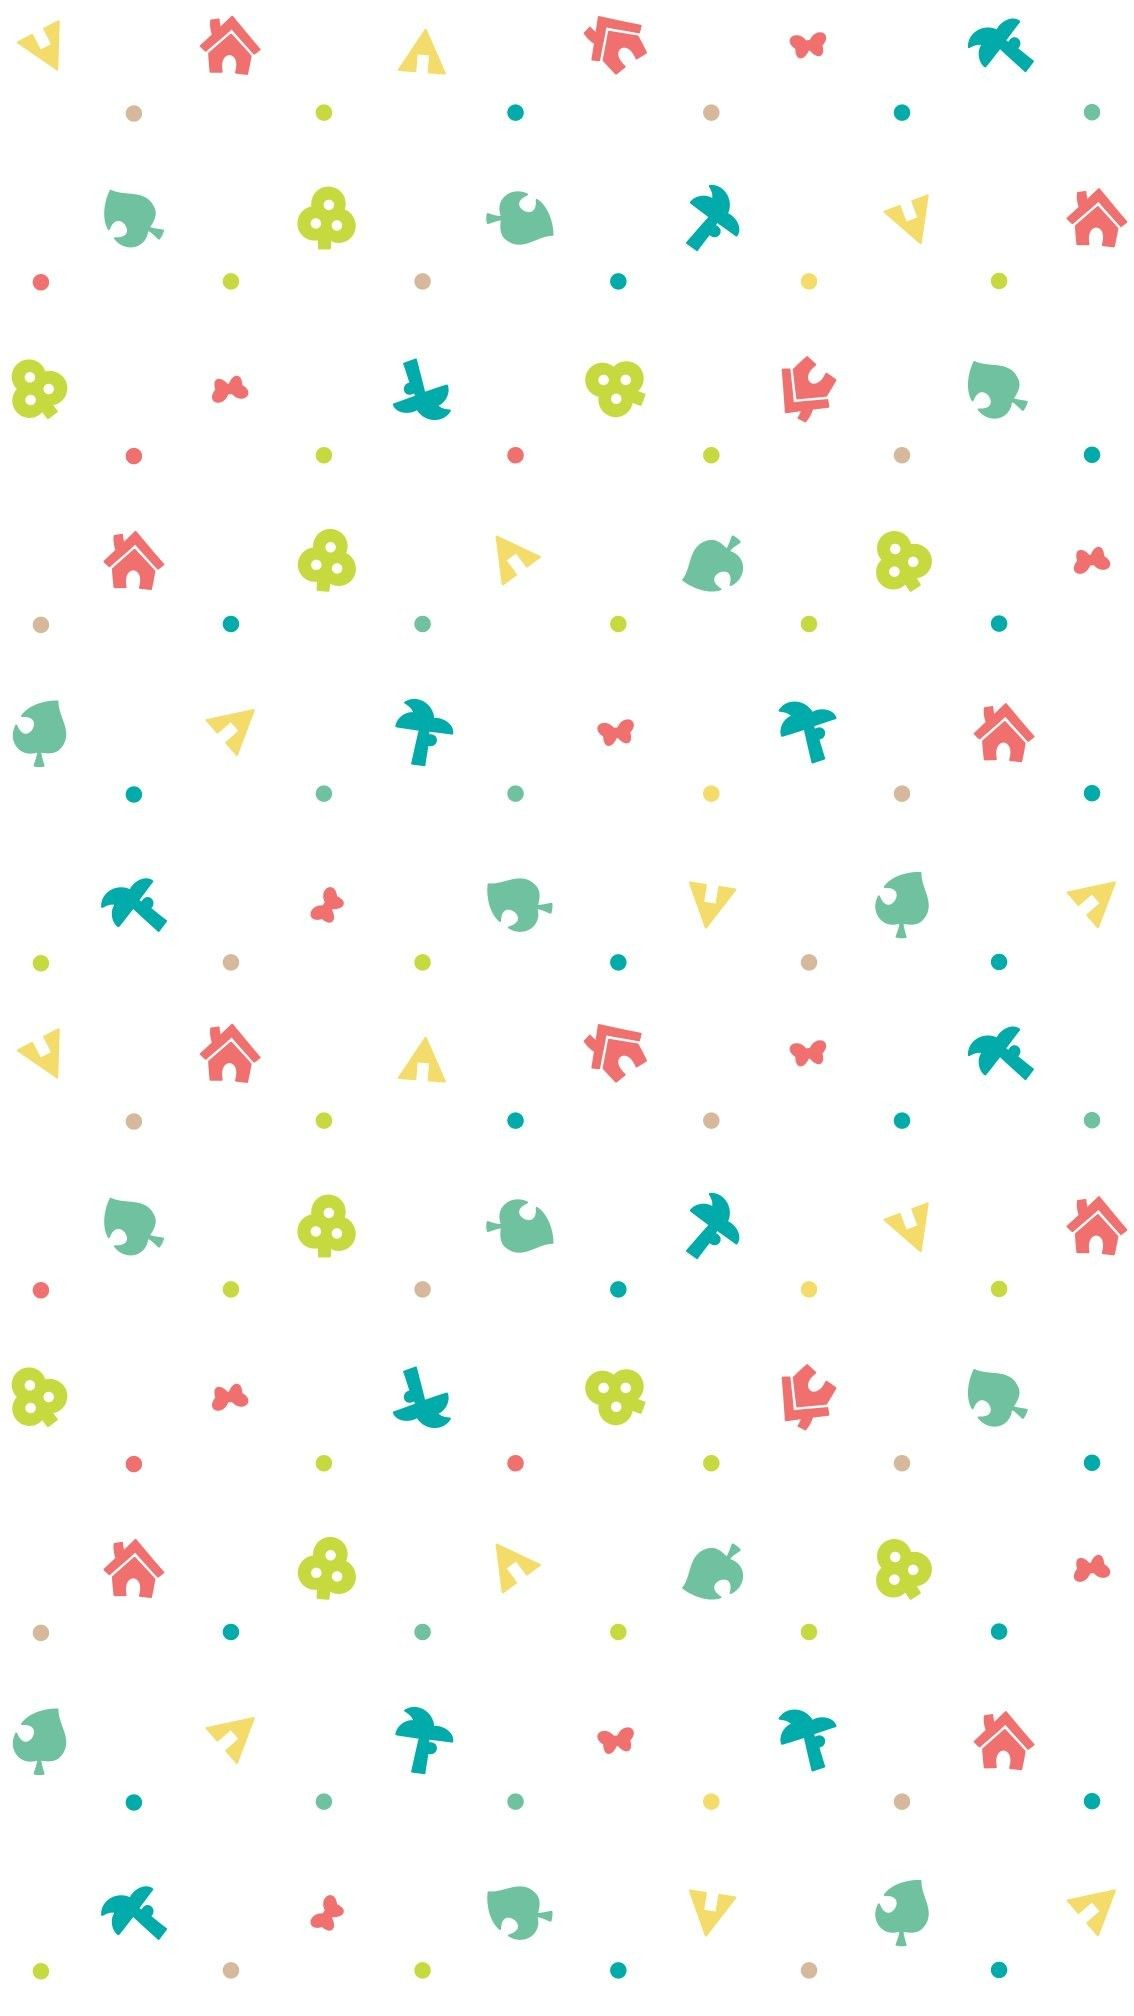 Animal Crossing Mobile Background Poptart 5 By Dramakinstv In 2020 Animal Crossing Minimalist Animal Animal Crossing Fan Art